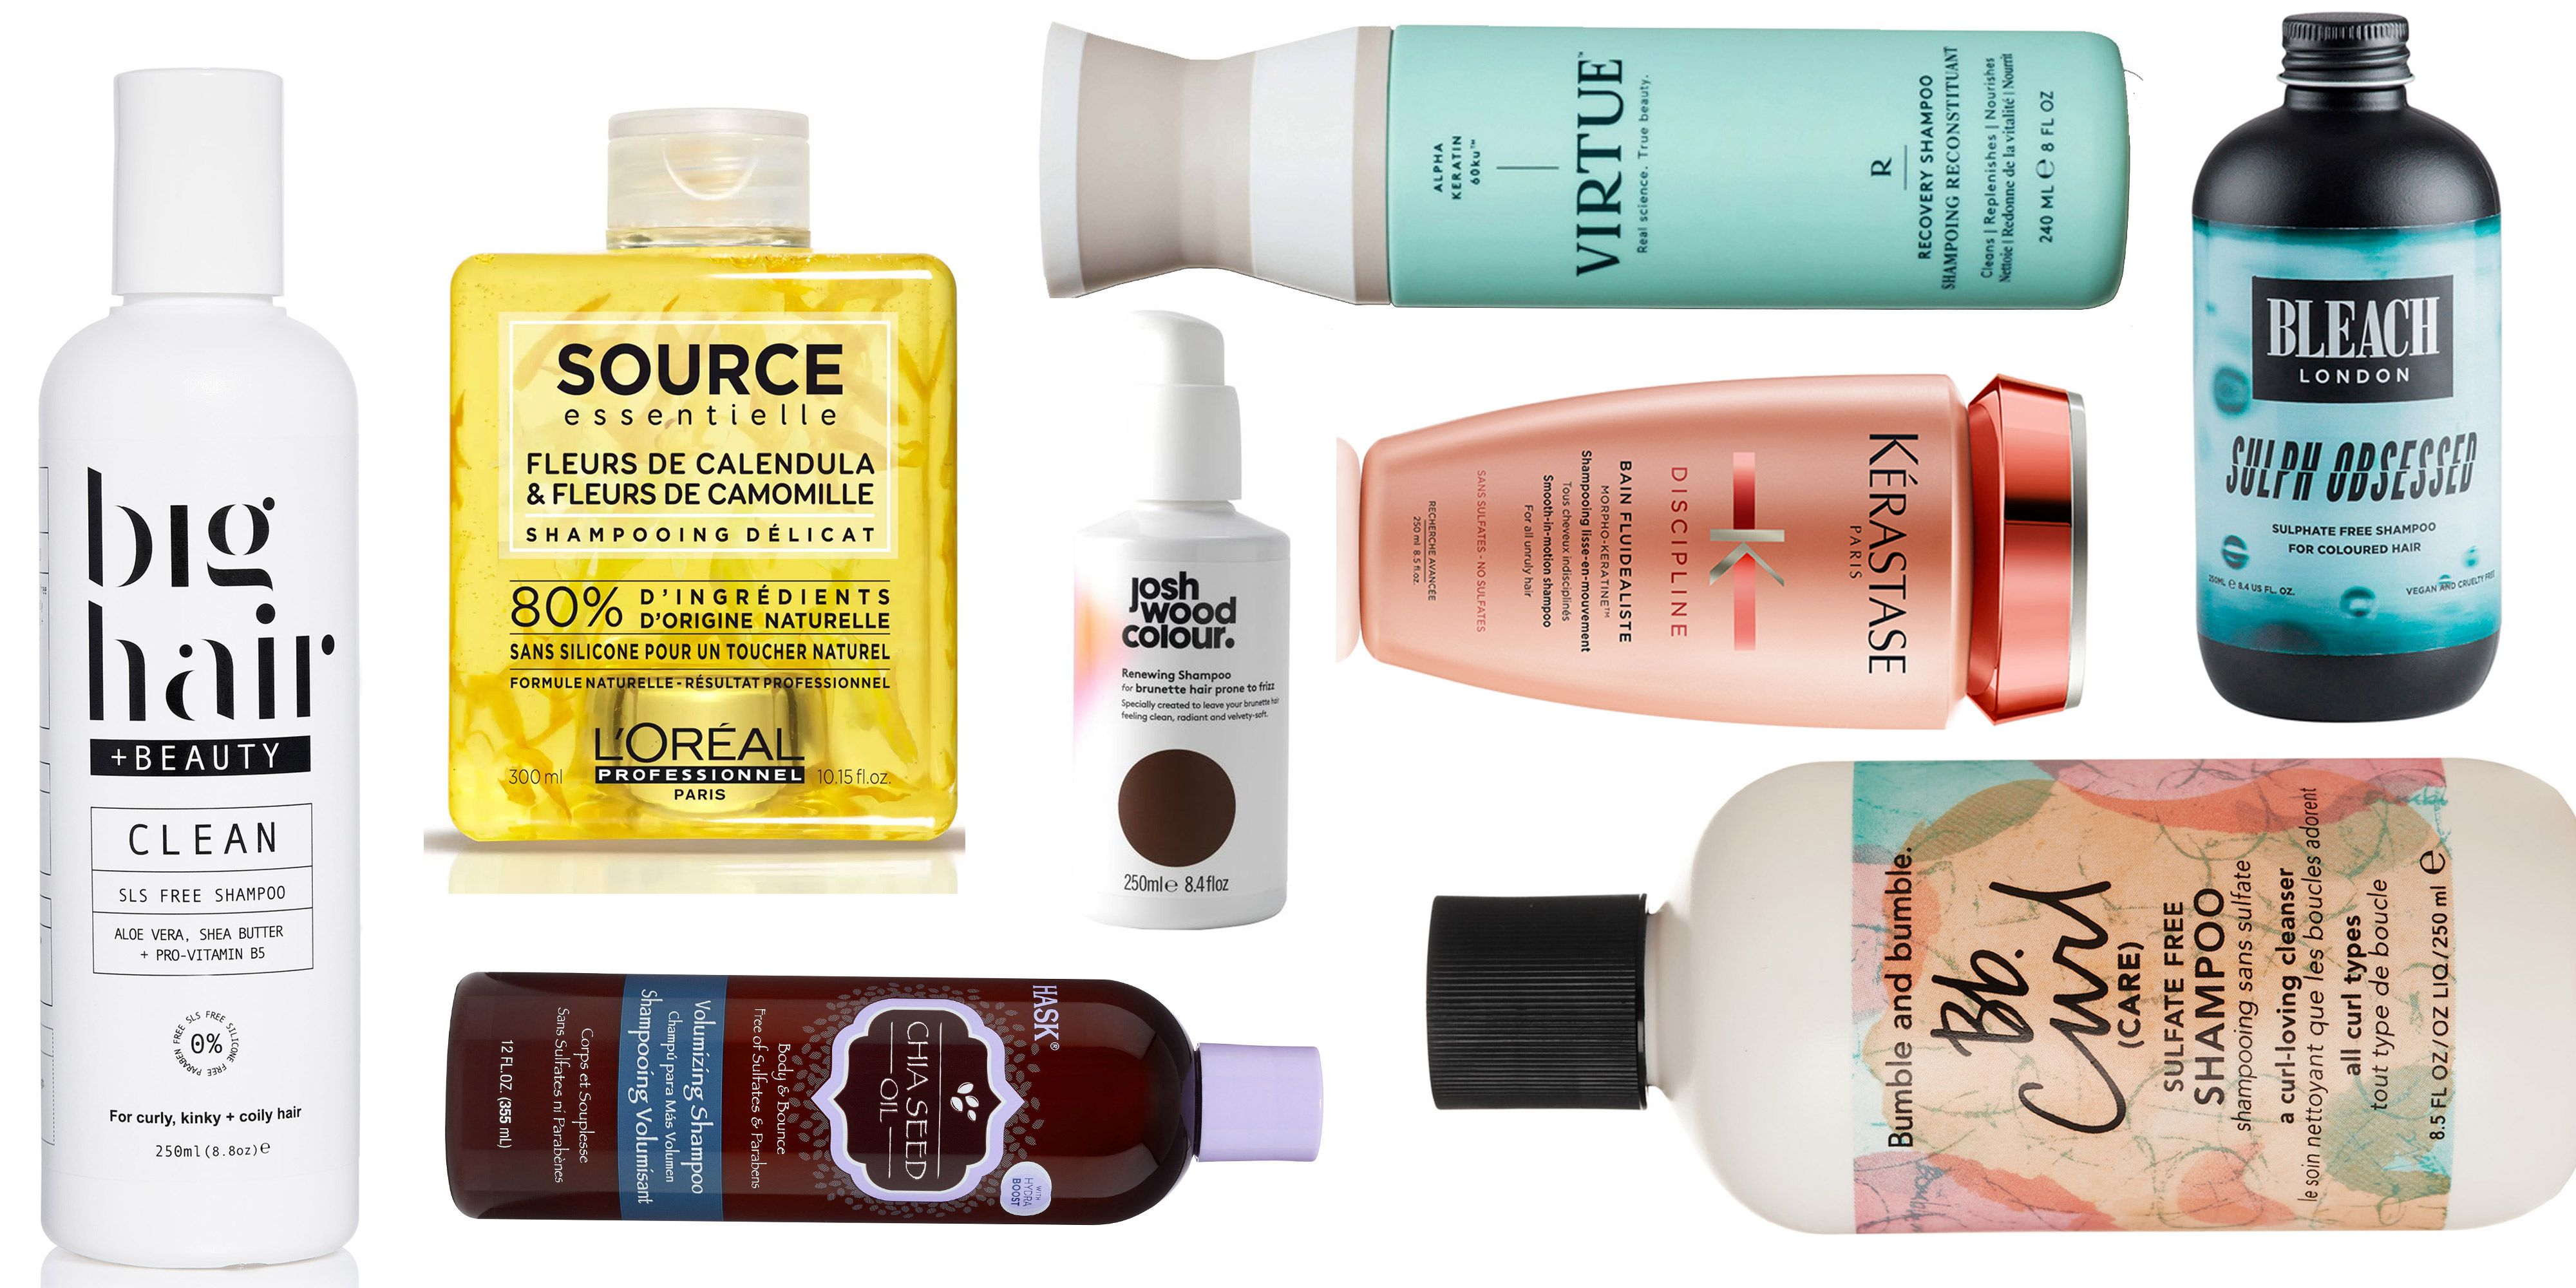 the best sulphate-free hair products - sls-free shampoos and styling